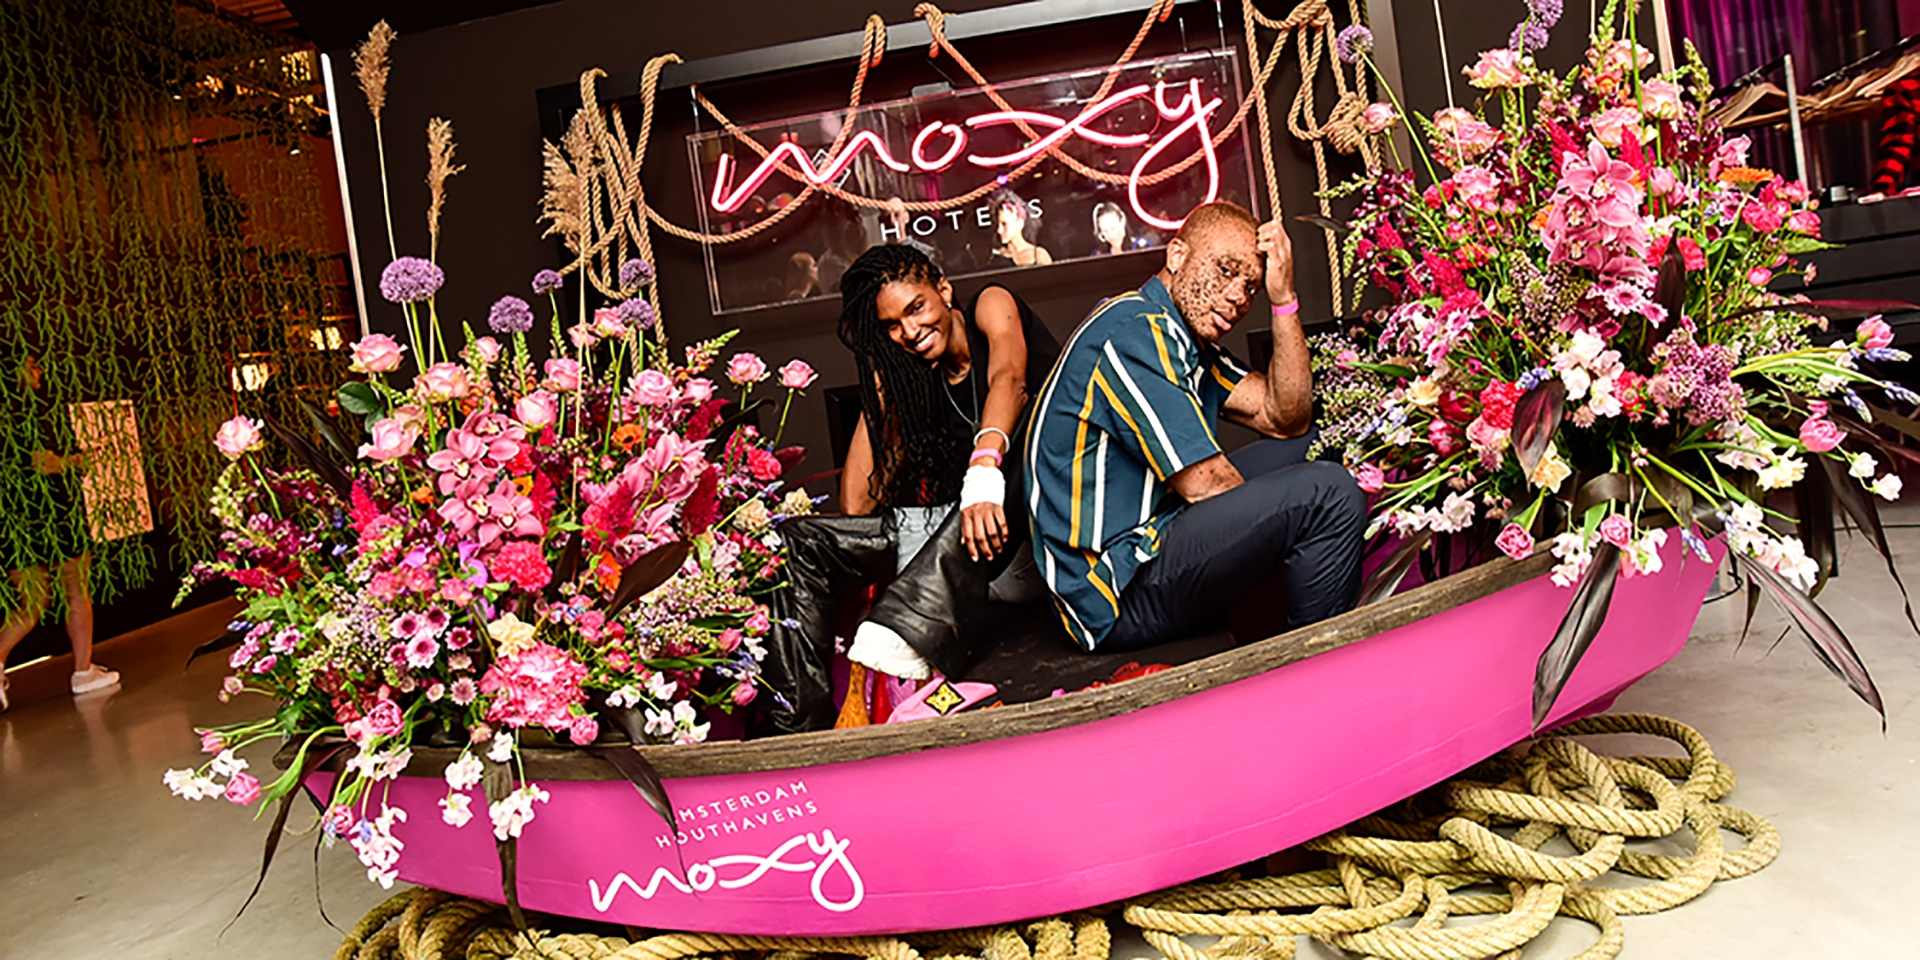 Filmmaker Ari Fitz attends the opening of Moxy Amsterdam Houthavens, the brand's first hotel in The Netherlands, along with Model Ralph Souffrant.